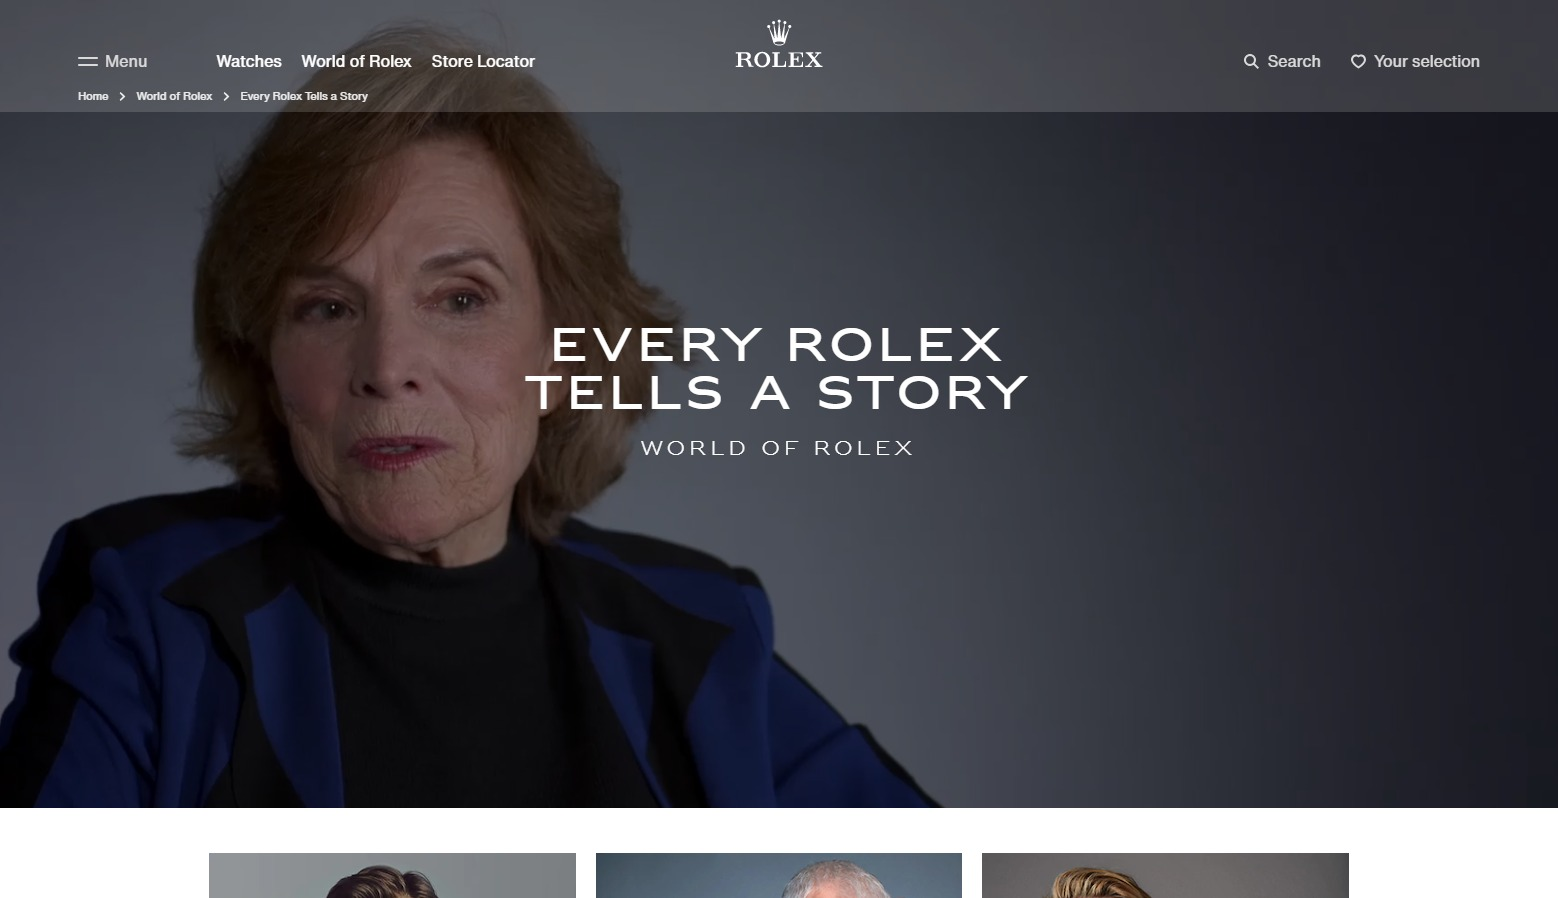 Every Rolex Tells a Story